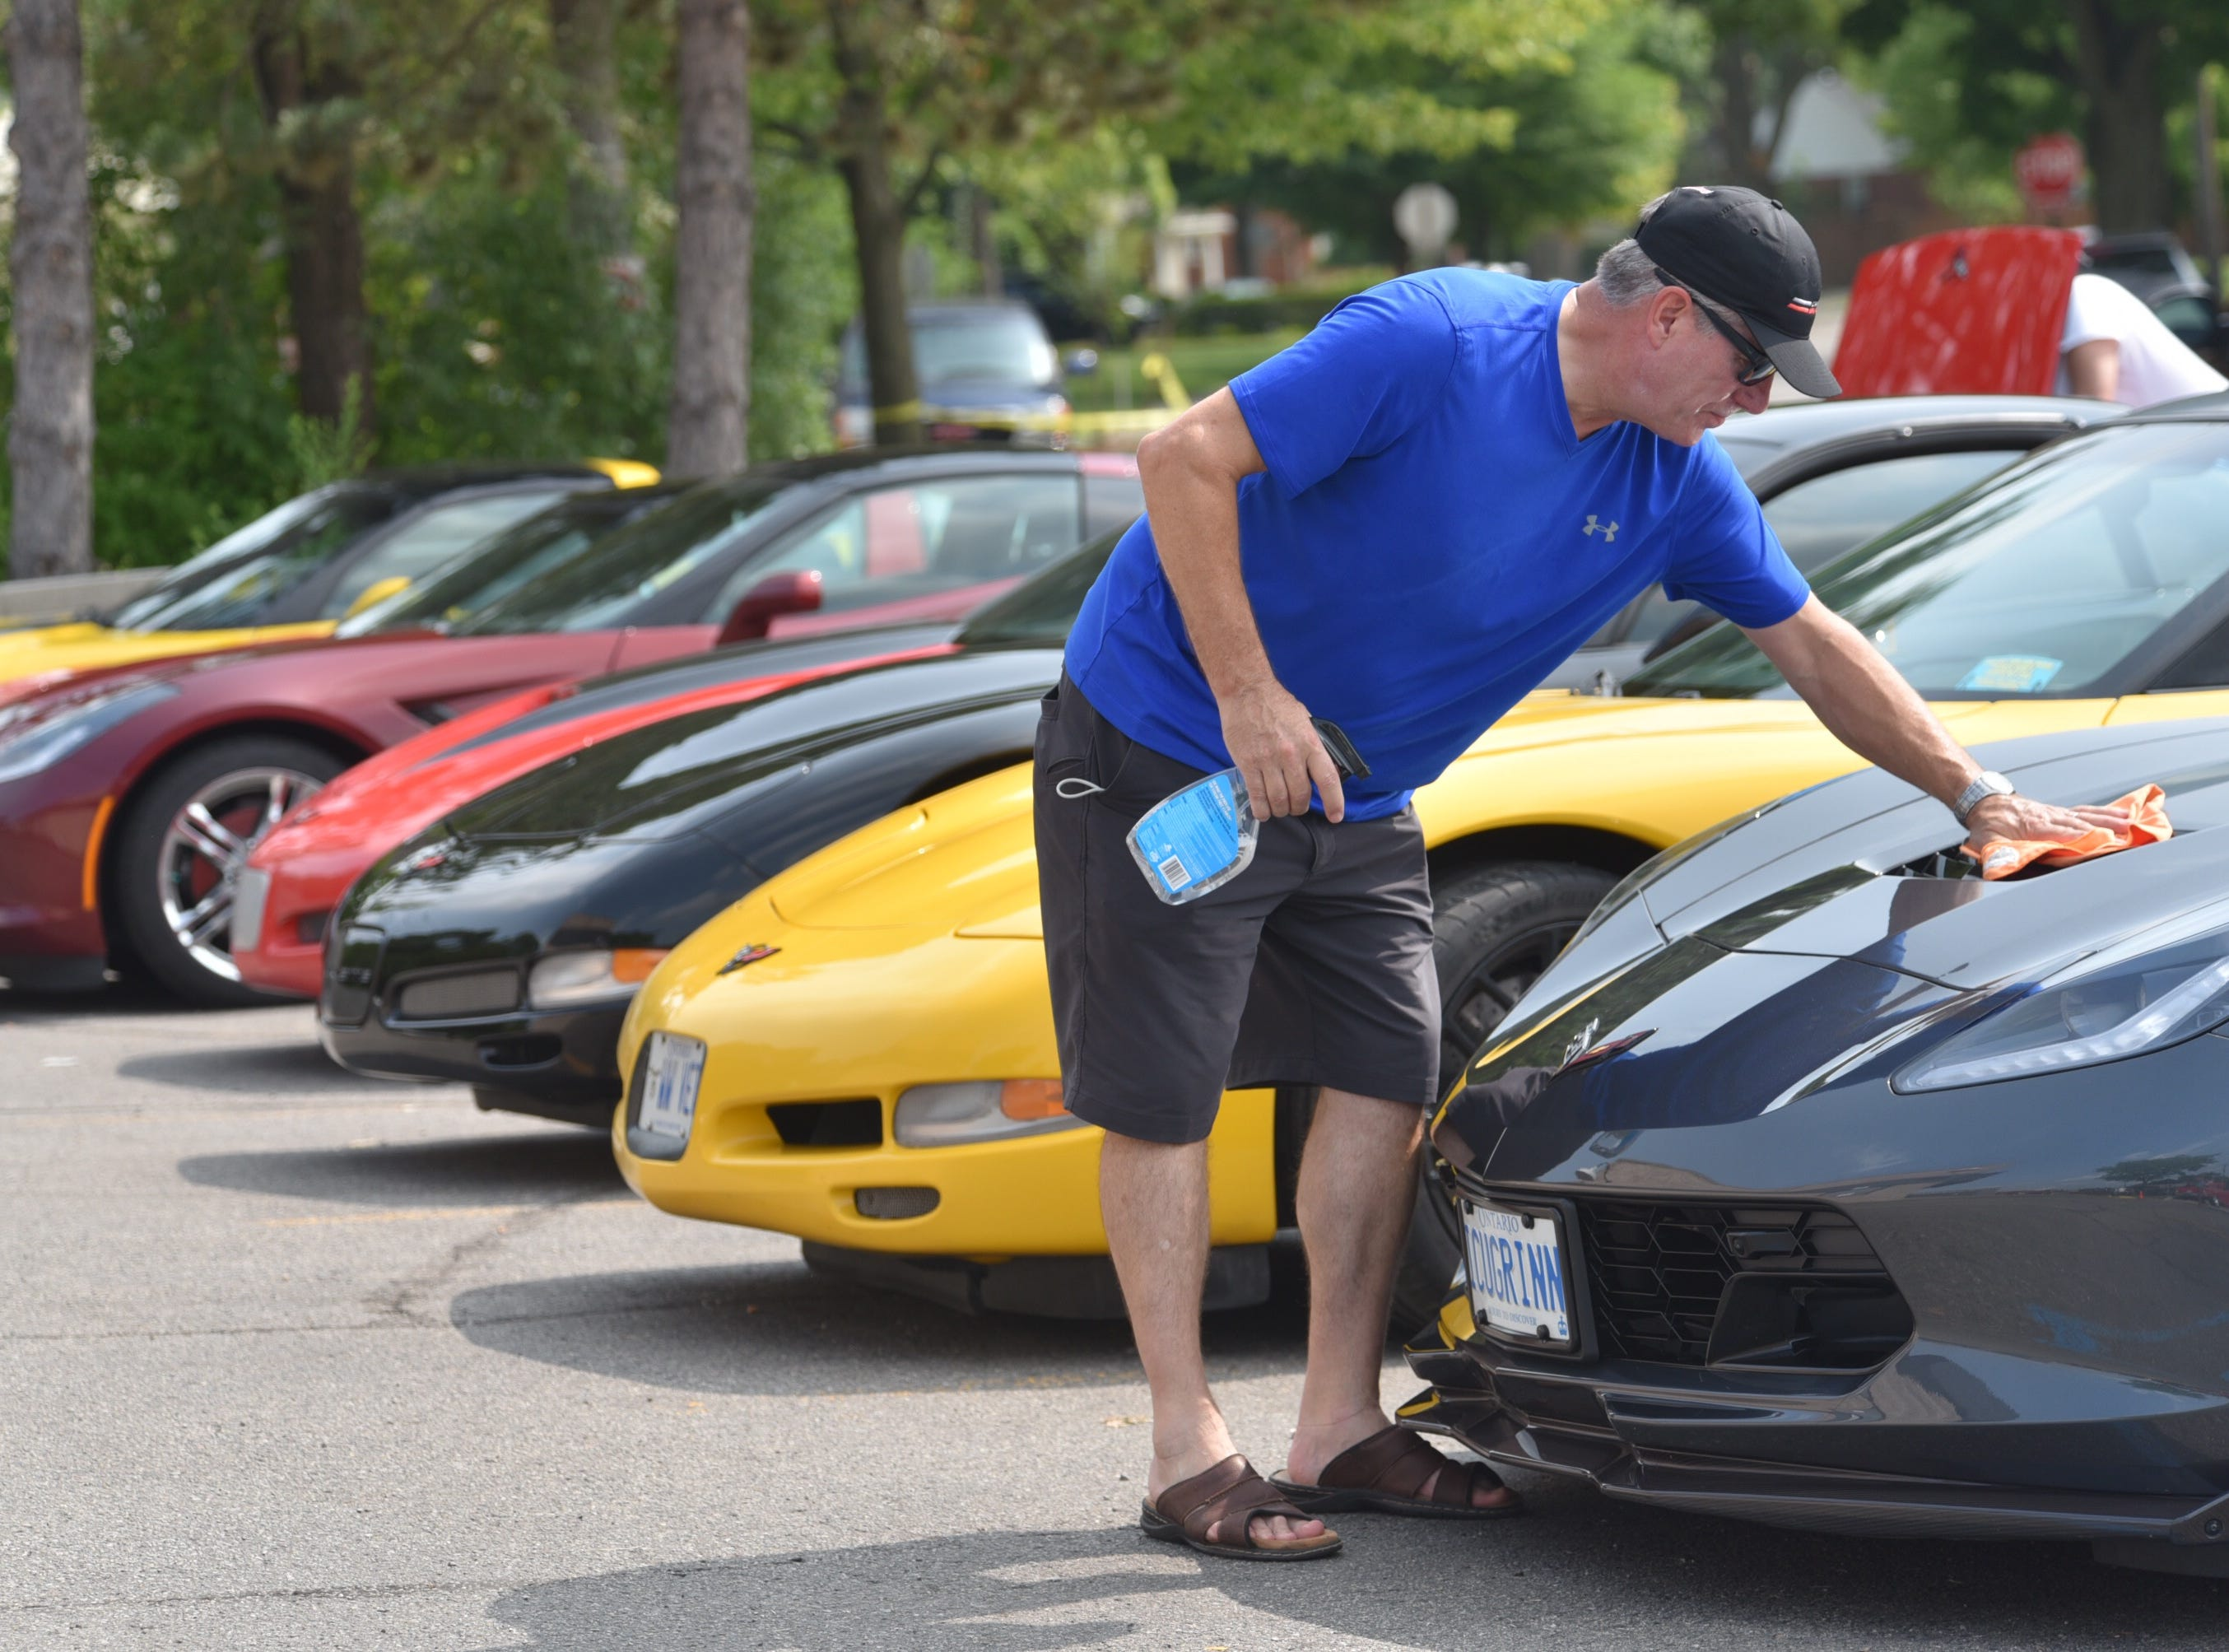 Richard Boyes, 66, of Ajax, Ontario, wipes down his 2017 Chevy Grand Sport Corvette in front of other Corvettes from a Corvette Internet forum group from Toronto.